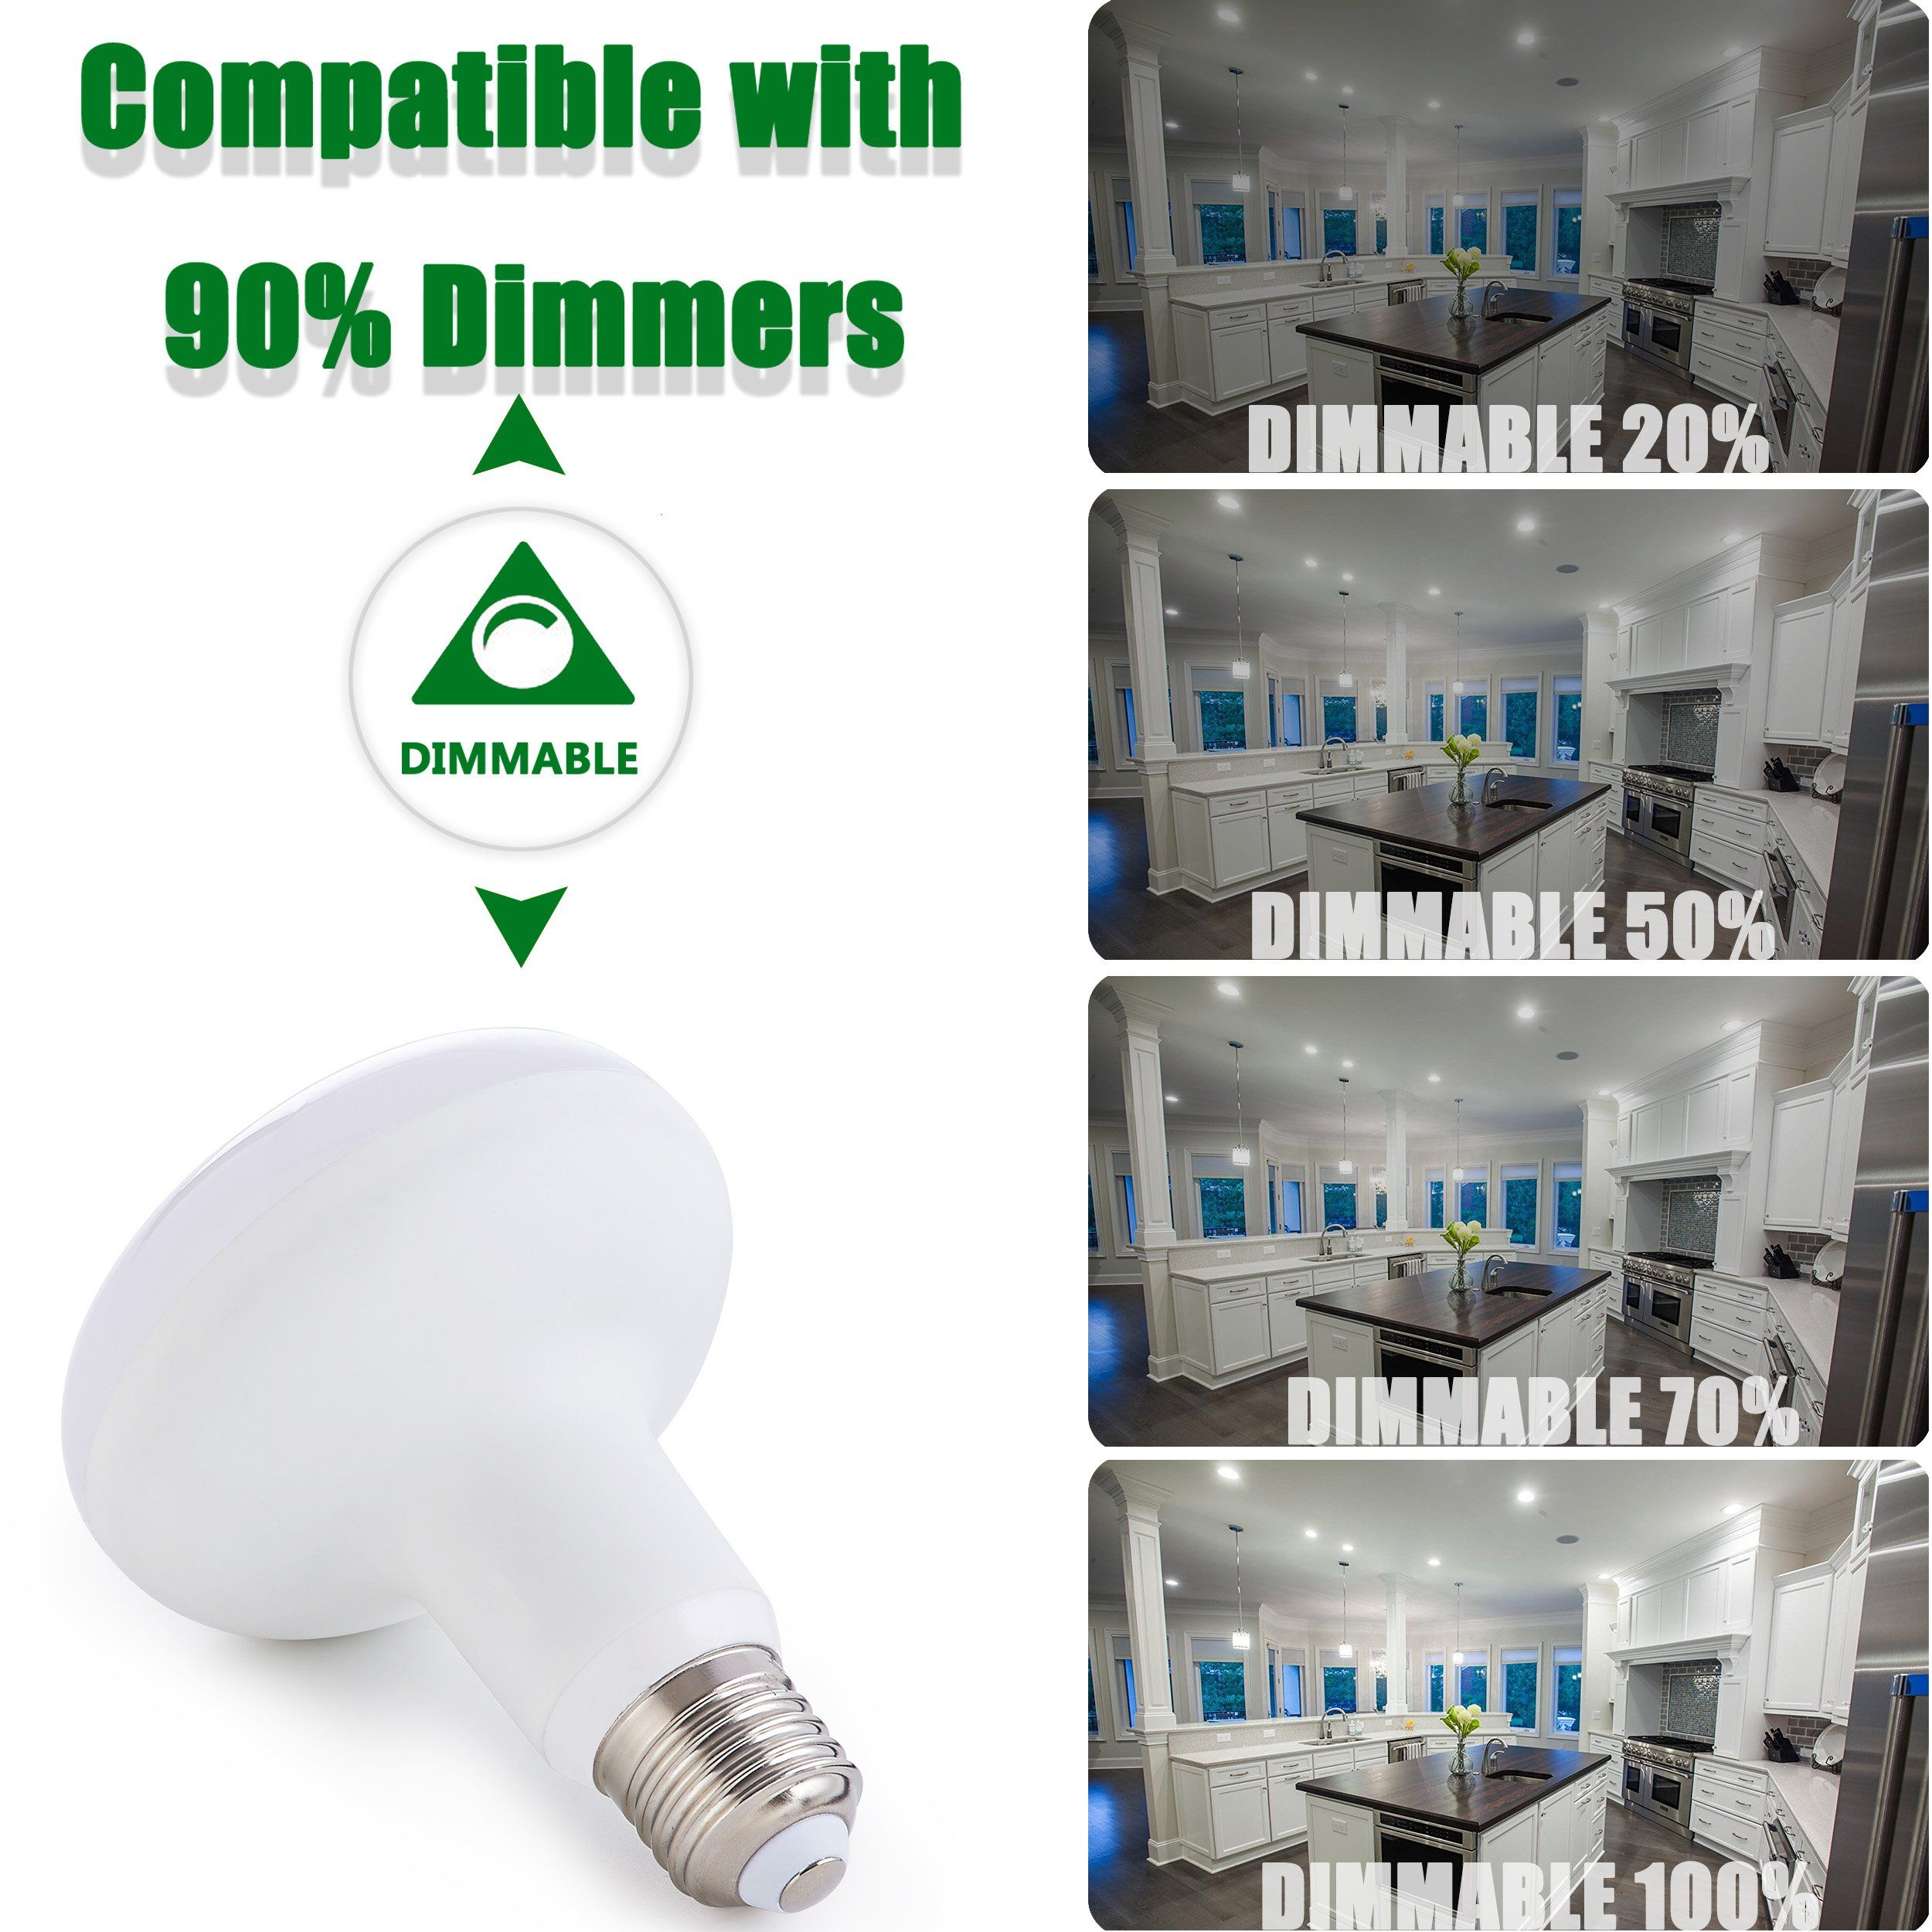 12w Br30 Dimmable Led Bulb 12w 120w Equivalent 120v 5000k Daylight 1200 Lumens Flood Light Bulb 120a Beam Angle E26 Medium Led Bulb Dimmable Led Flood Lights